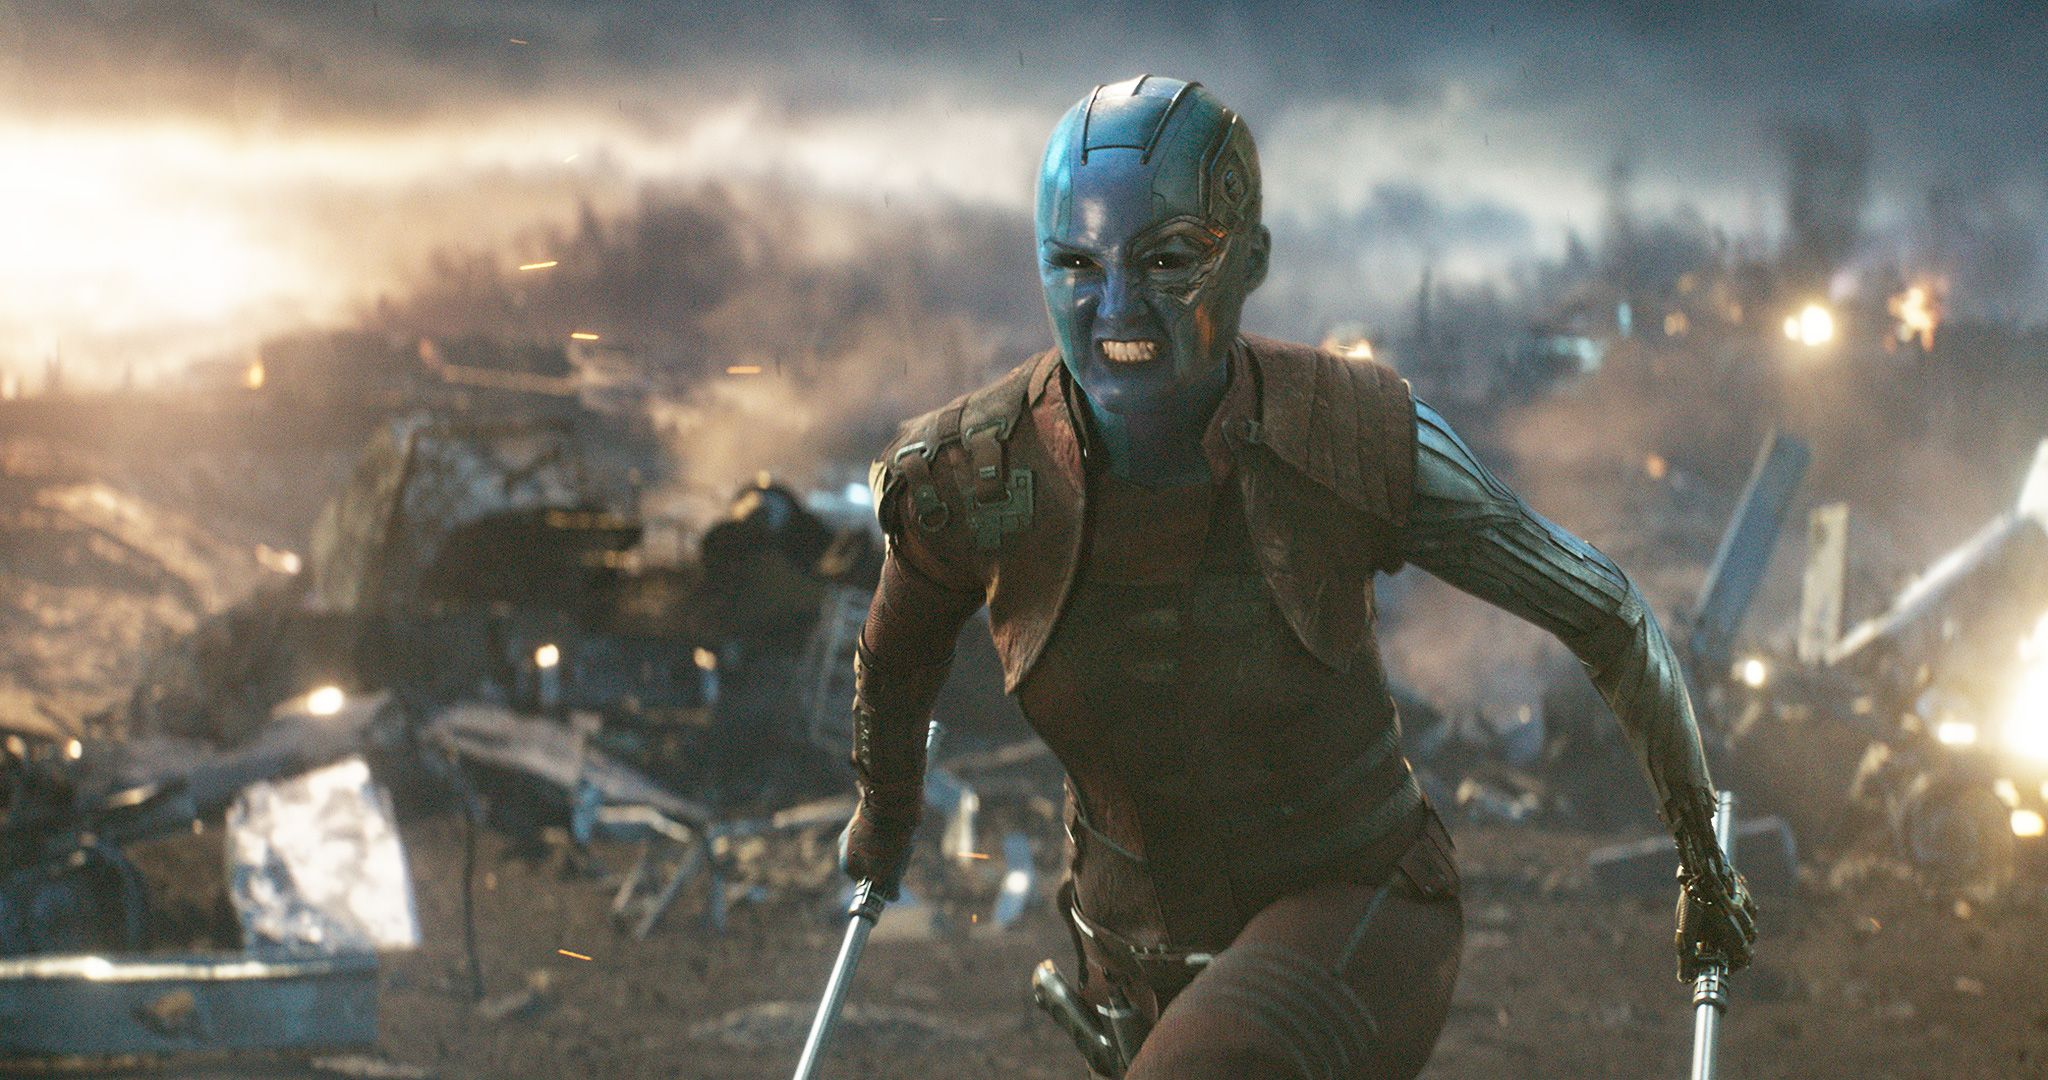 Avengers: Endgame could well be an Oscar contender